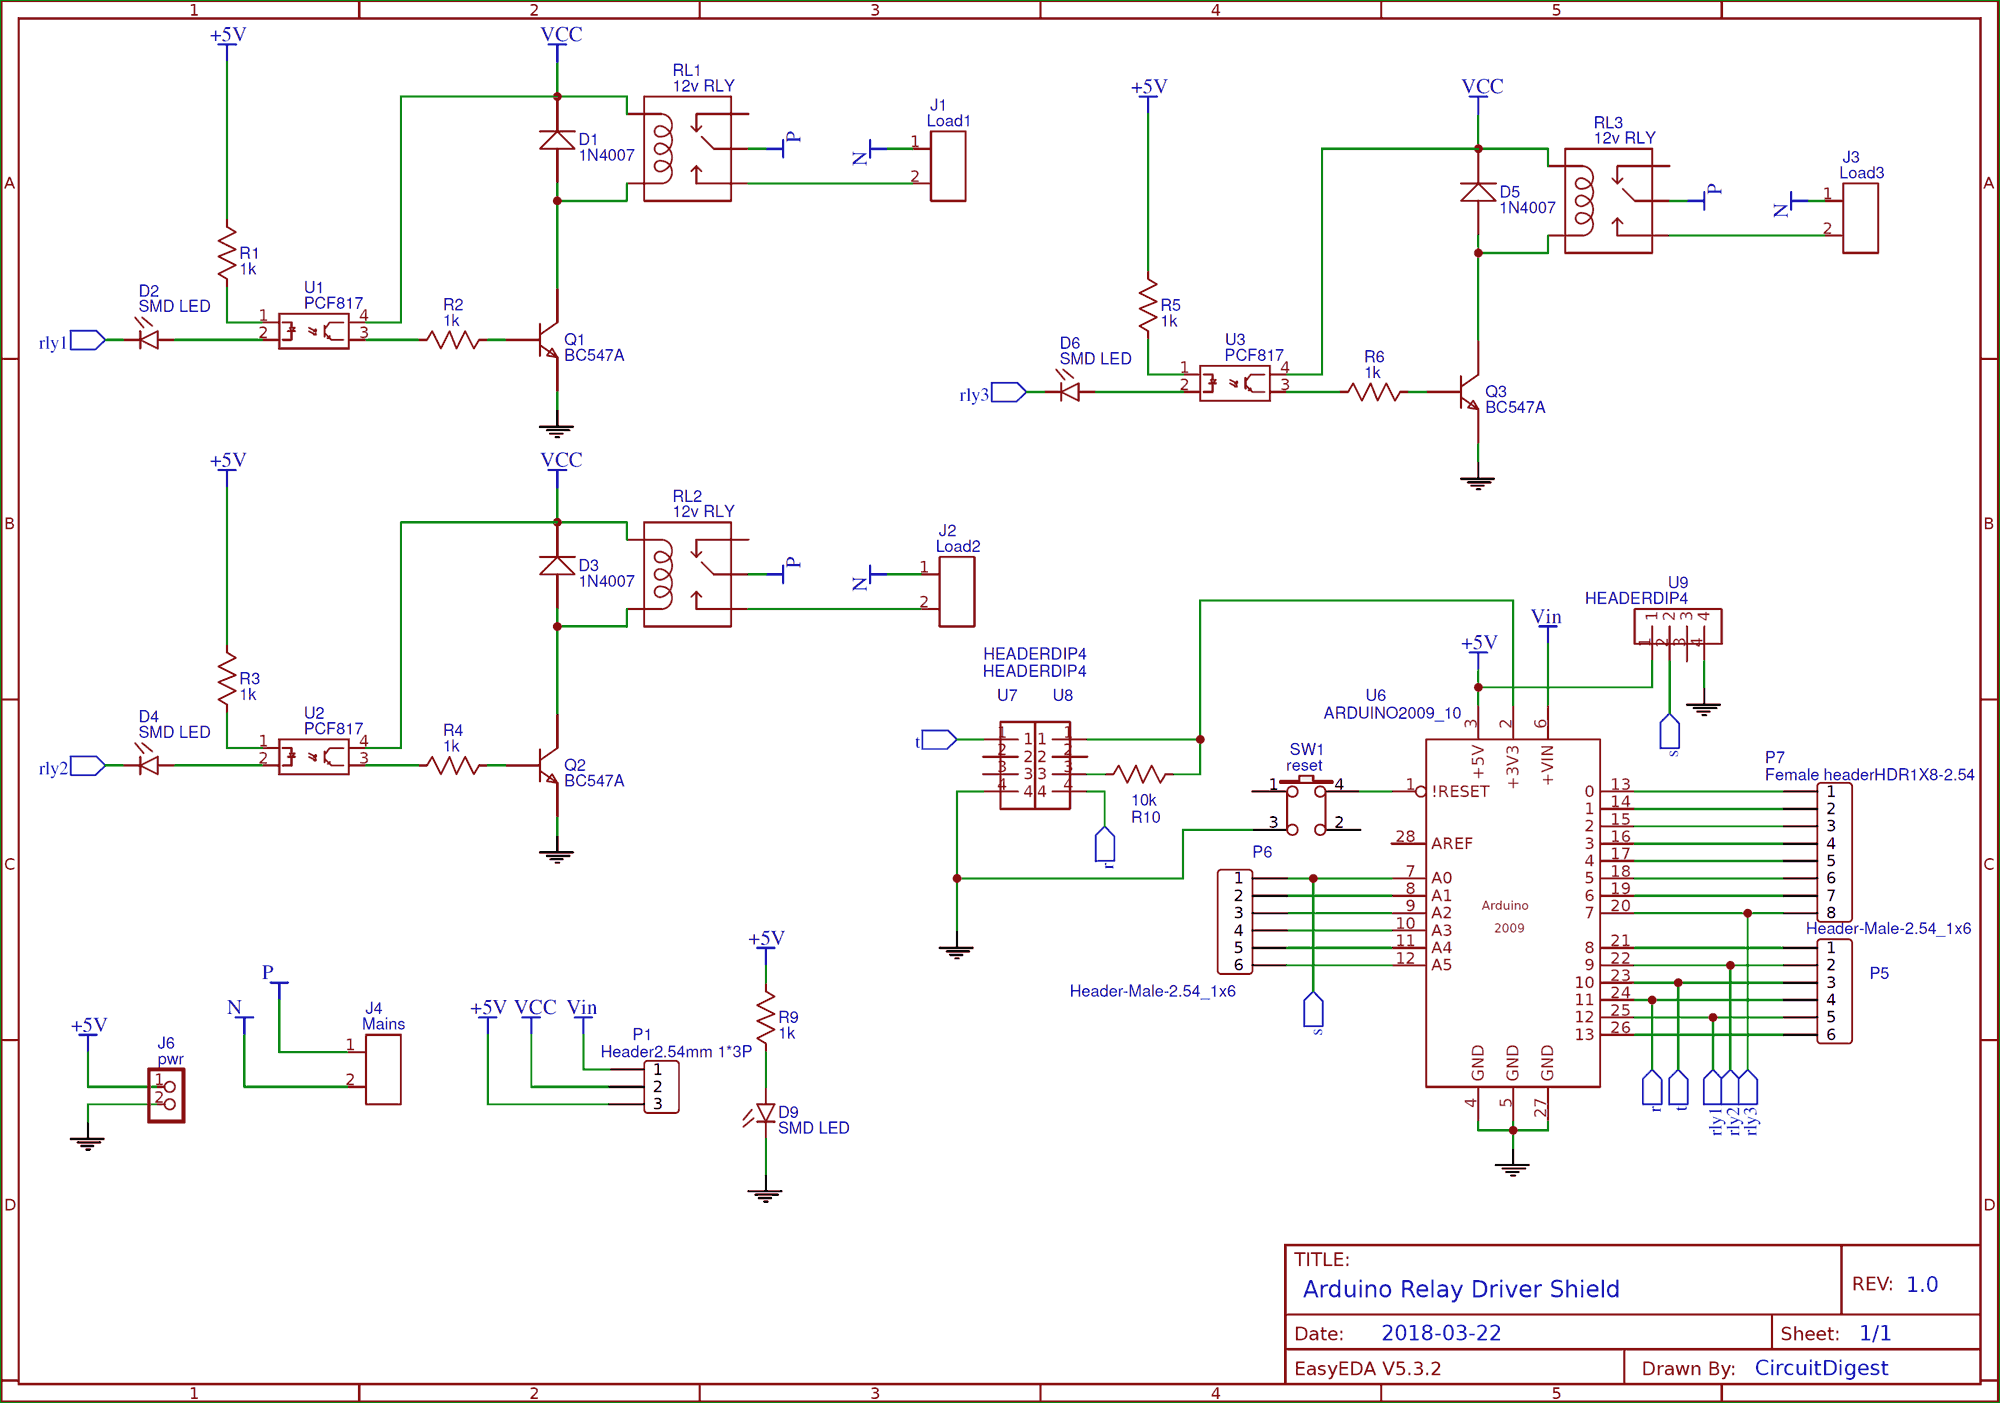 Circuit Diagram for DIY Arduino Relay Driver Shield PCB